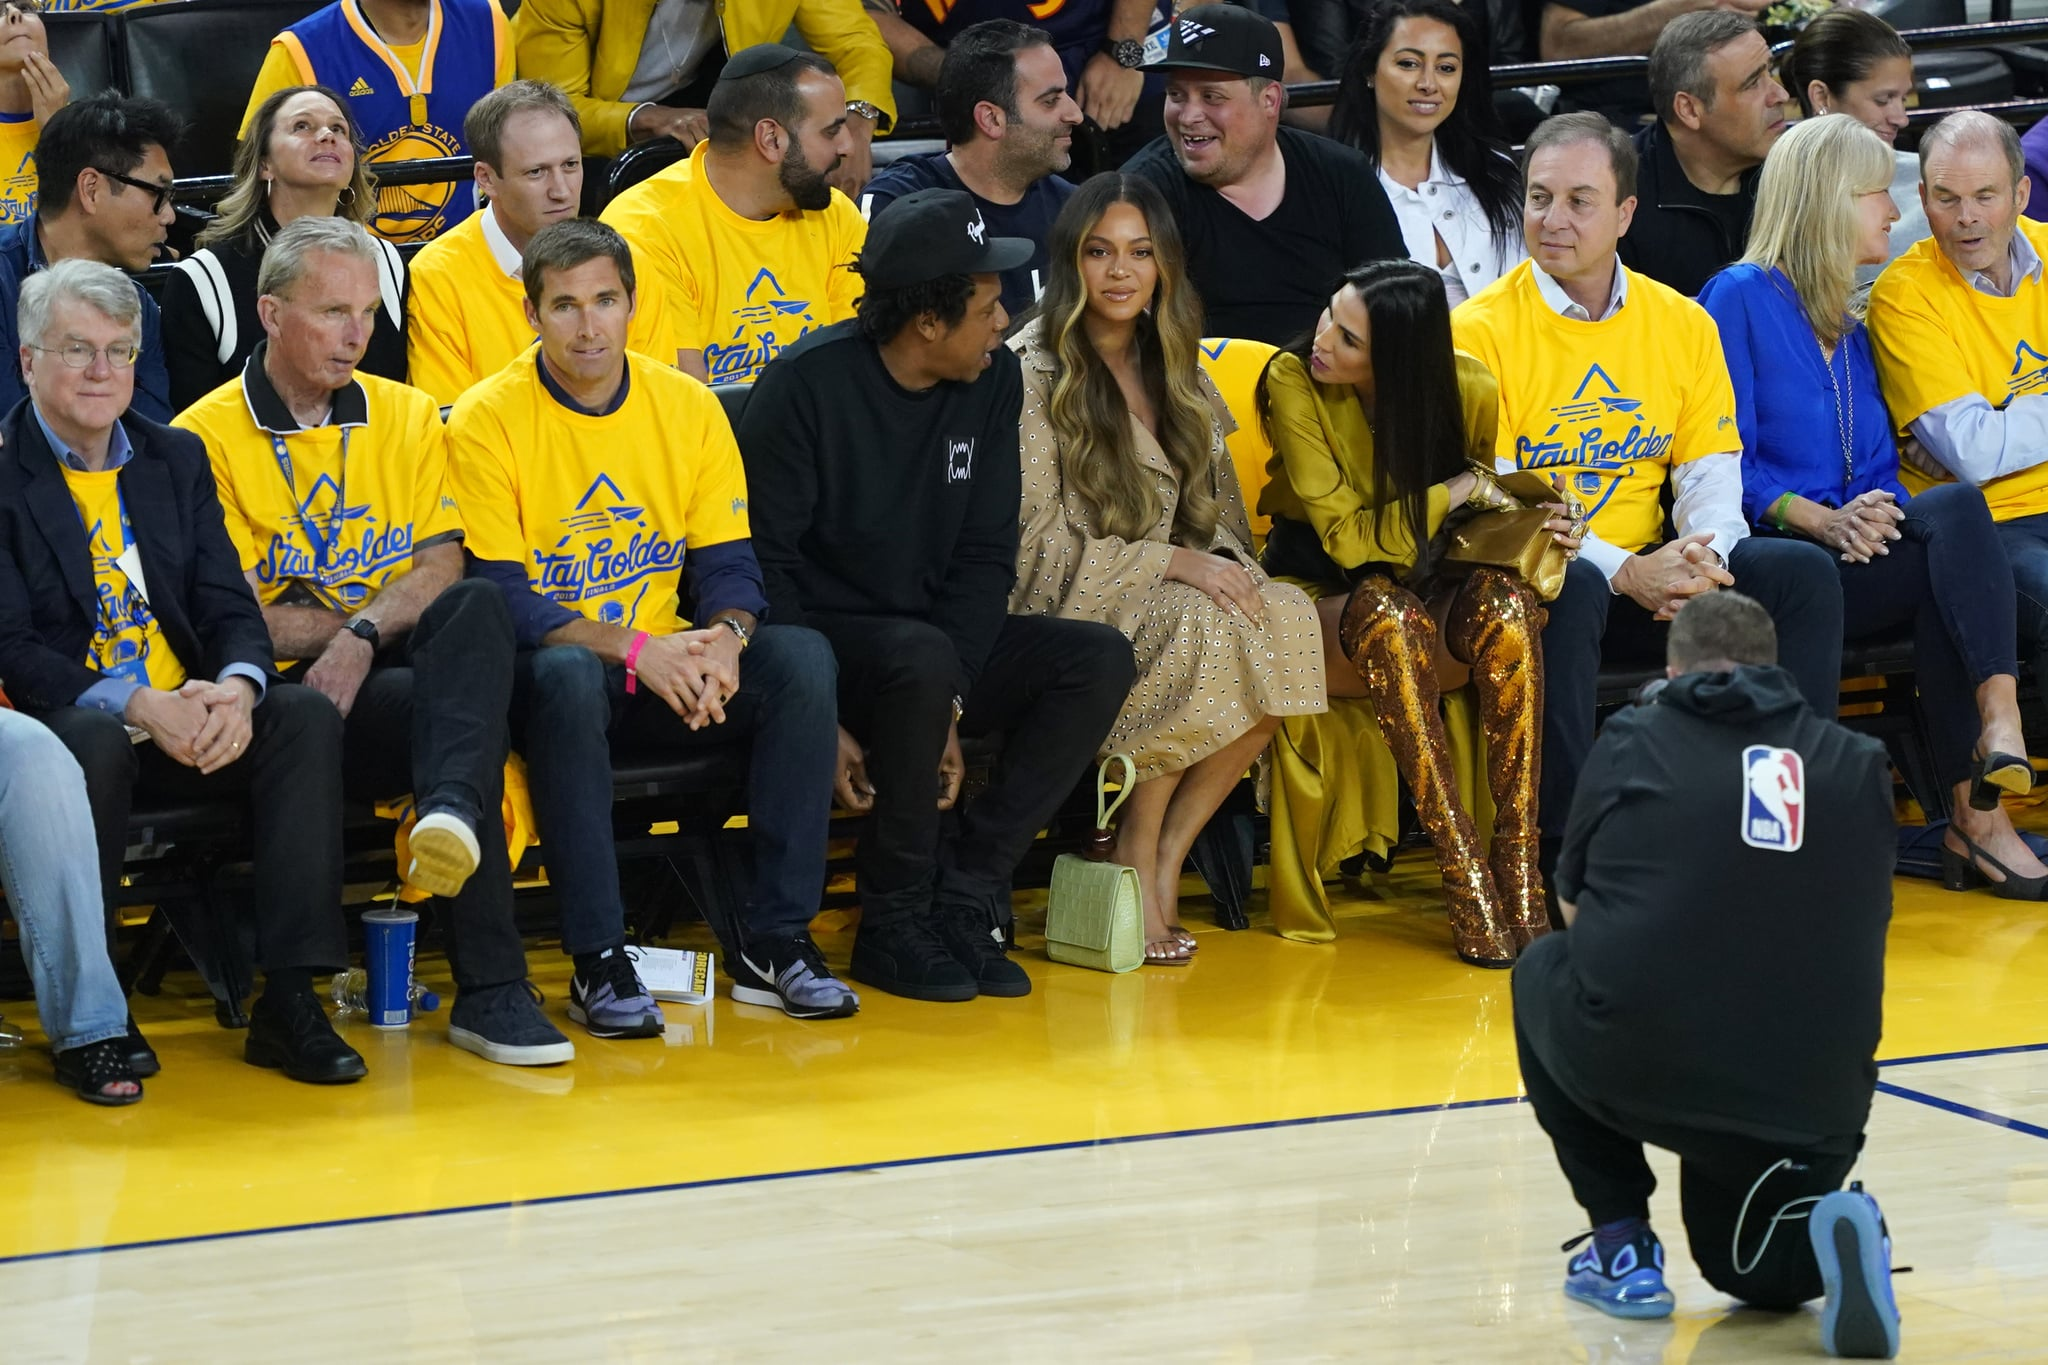 OAKLAND, CALIFORNIA - JUNE 05:  Jay-Z and Beyonce attend Game Three of the 2019 NBA Finals between the Golden State Warriors and the Toronto Raptors at ORACLE Arena on June 05, 2019 in Oakland, California. NOTE TO USER: User expressly acknowledges and agrees that, by downloading and or using this photograph, User is consenting to the terms and conditions of the Getty Images Licence Agreement. (Photo by Thearon W. Henderson/Getty Images)